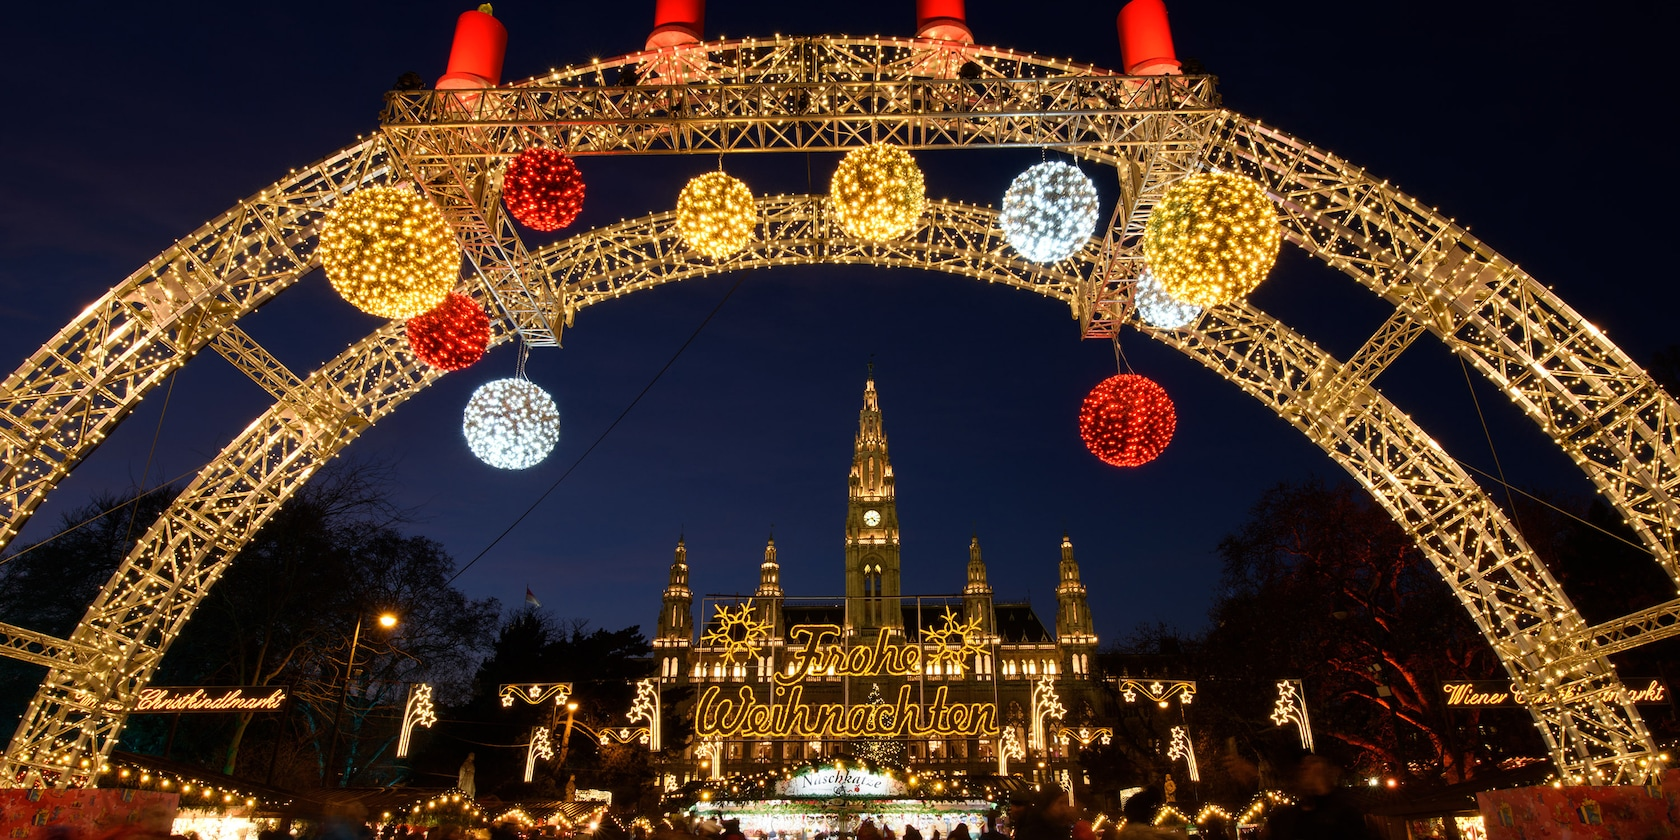 A Christmas market in Vienna is decorated in holiday lights, including a large arc with festive balls of light hanging down and framing a large building with a lighted sign that reads: